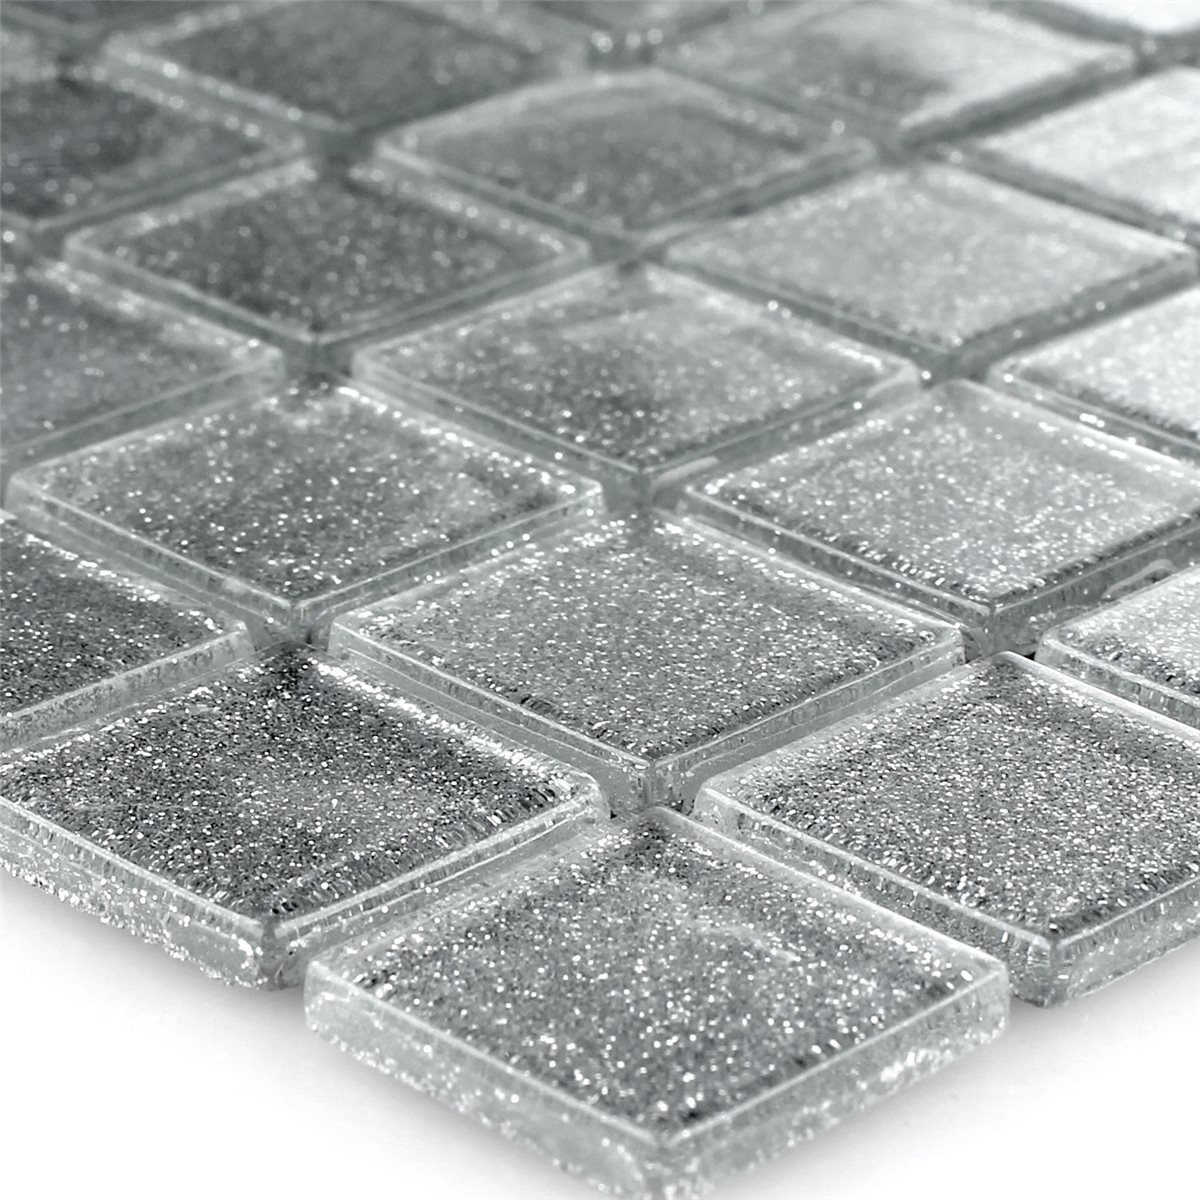 Clear Glass Mosaic Tiles Silver Glitter 25x25x4mm | www.mosafil.co.uk